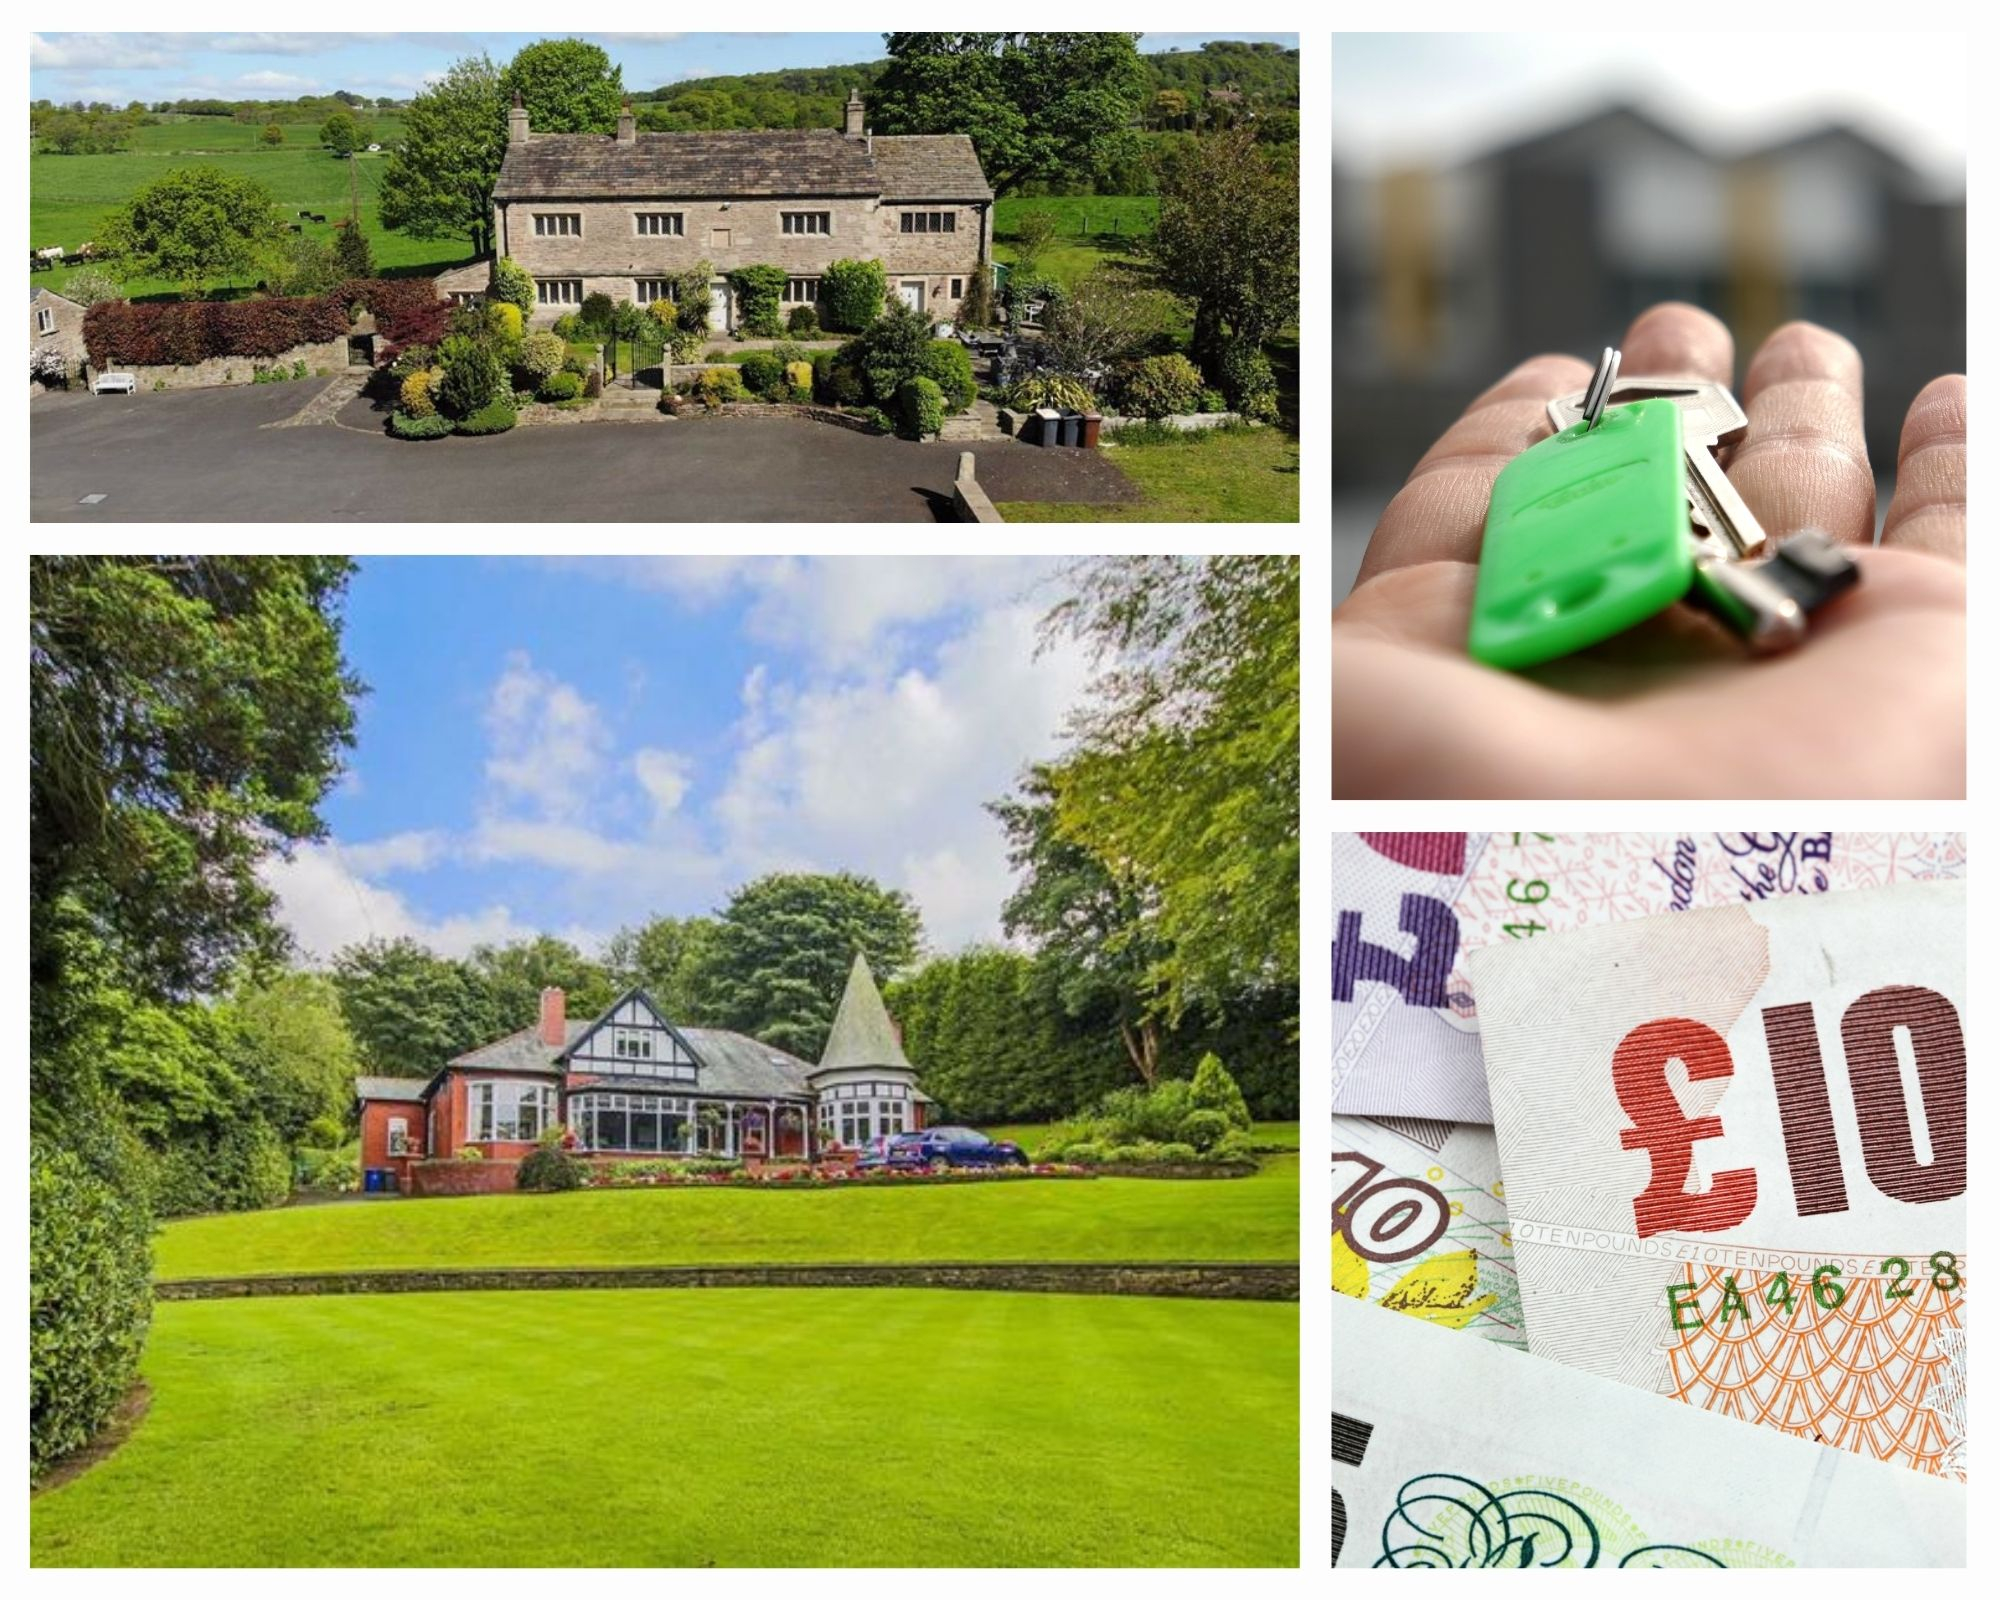 The salary needed to afford East Lancashire's most expensive properties